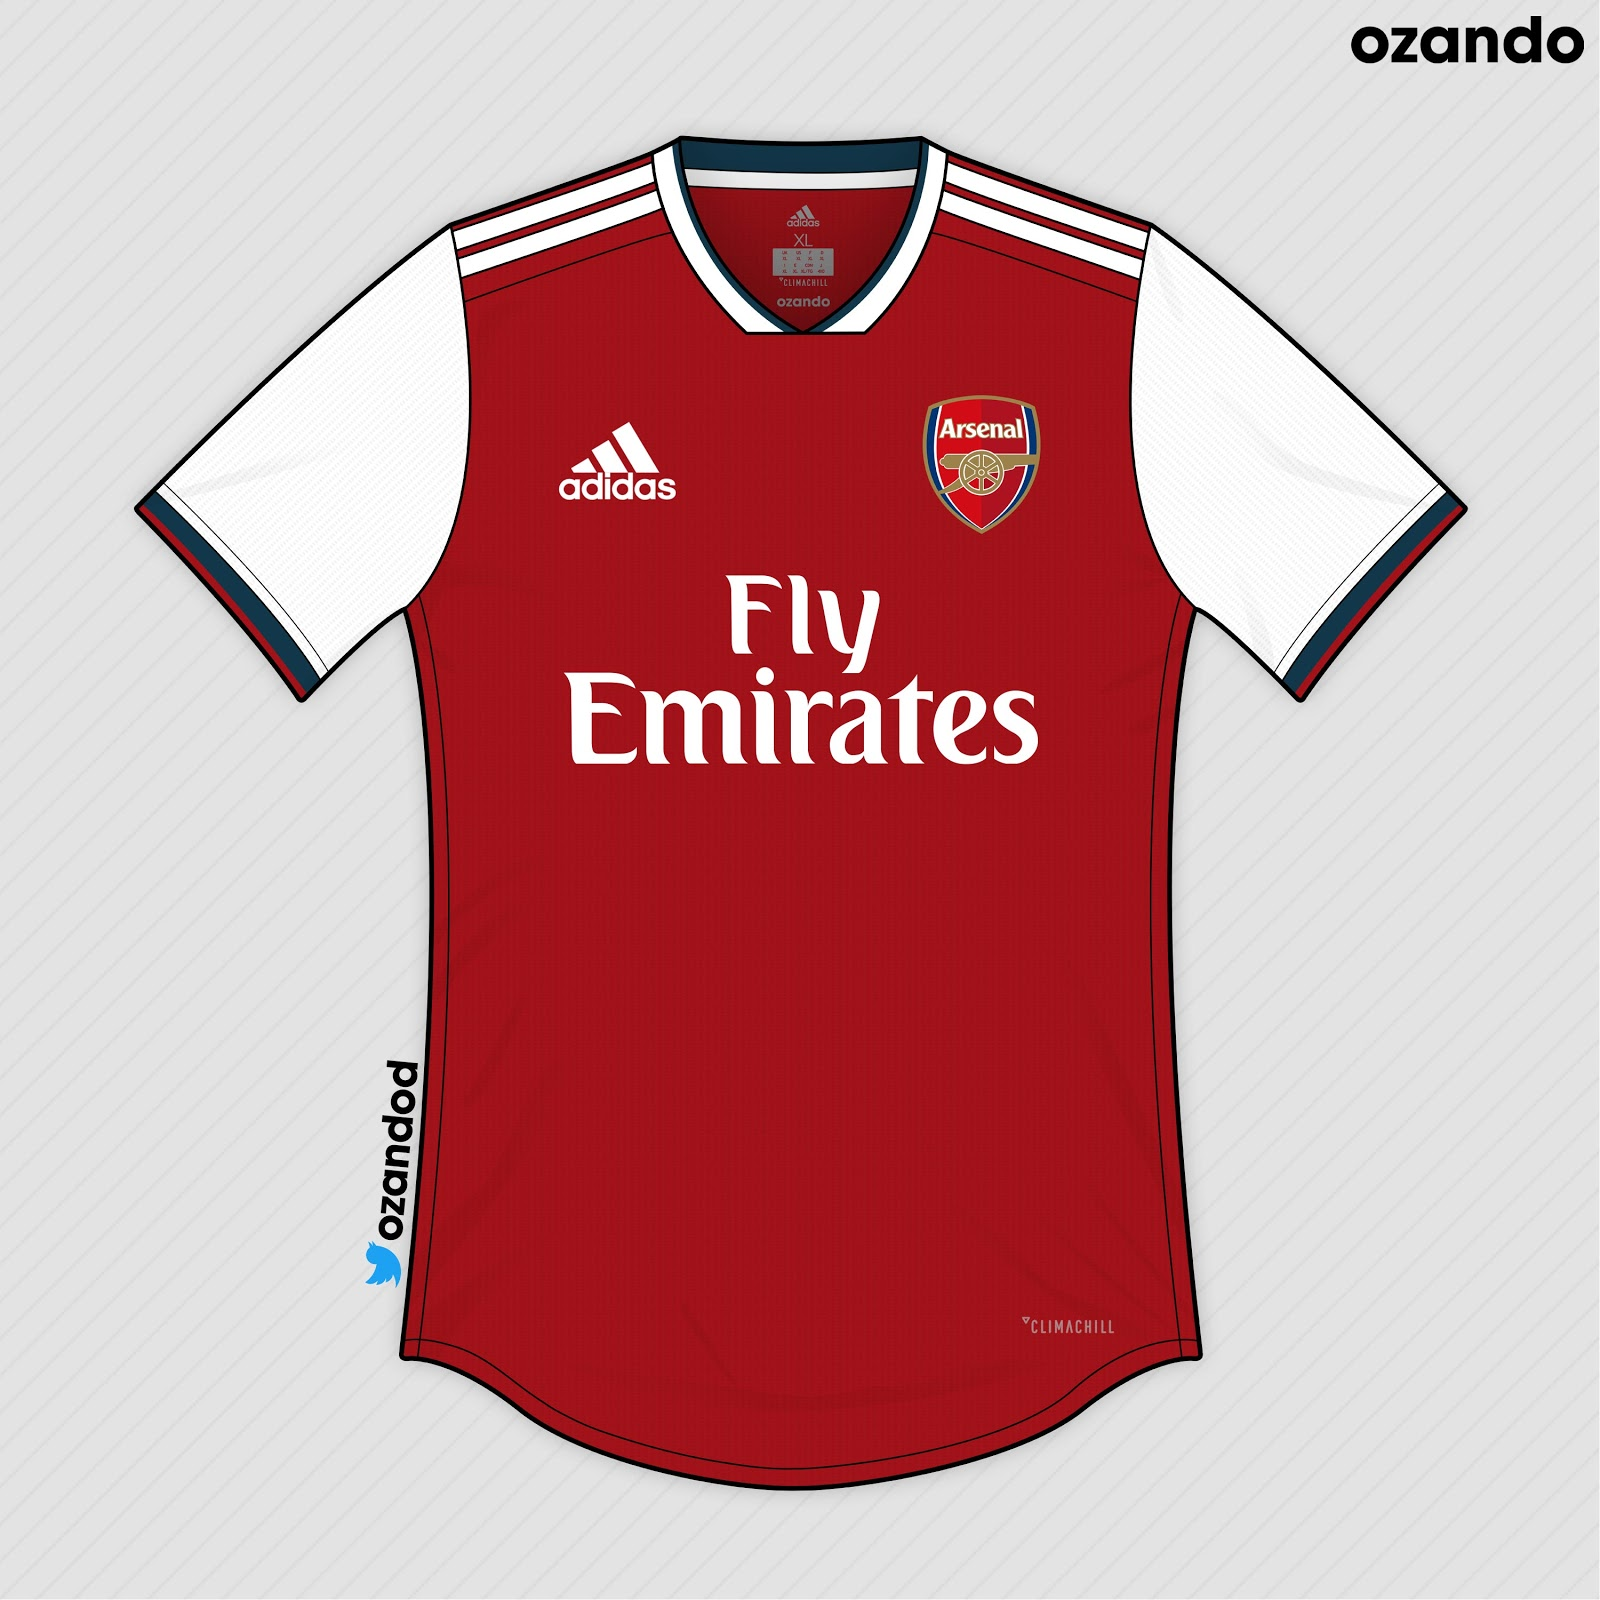 bb14afdcc0c Adidas Arsenal 19-20 Home, Away & Third Concept Kits by ozando ...